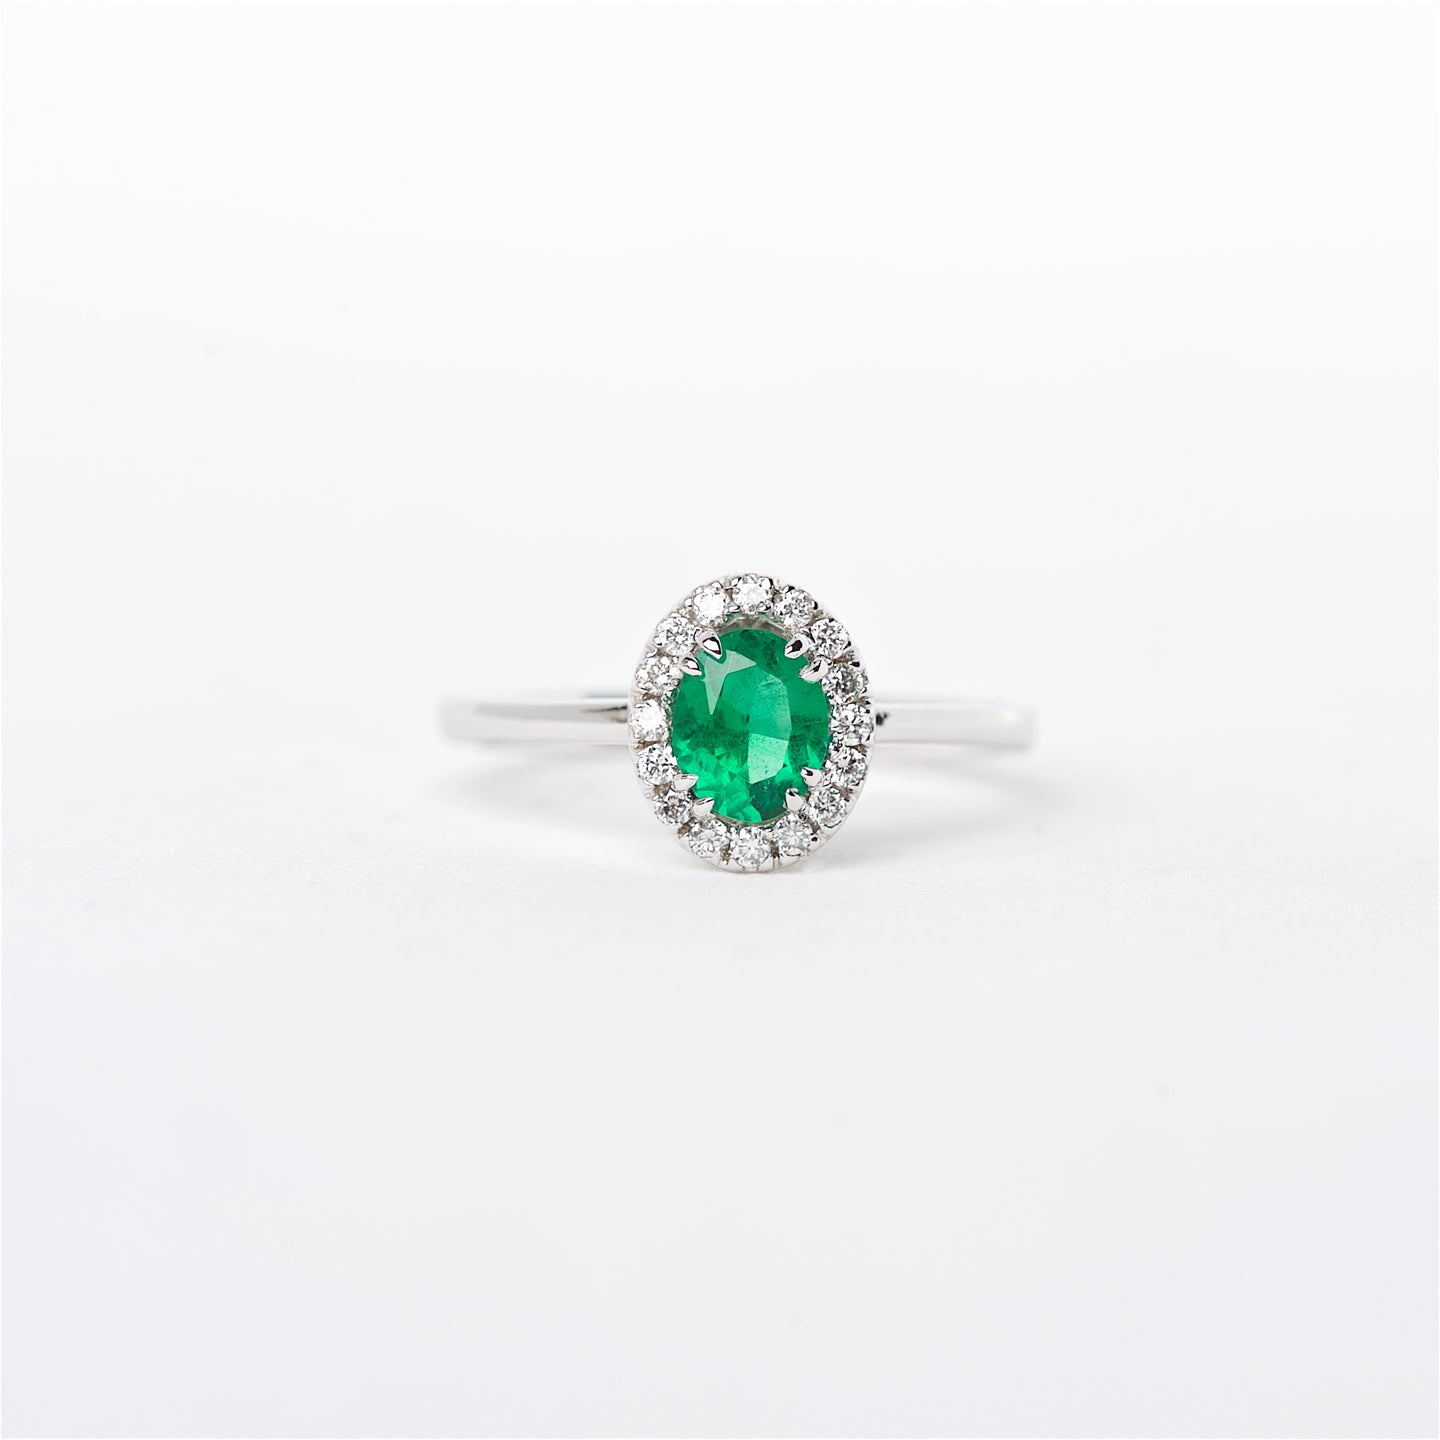 The Hope - 18K Colombian Emerald and Diamond Ring